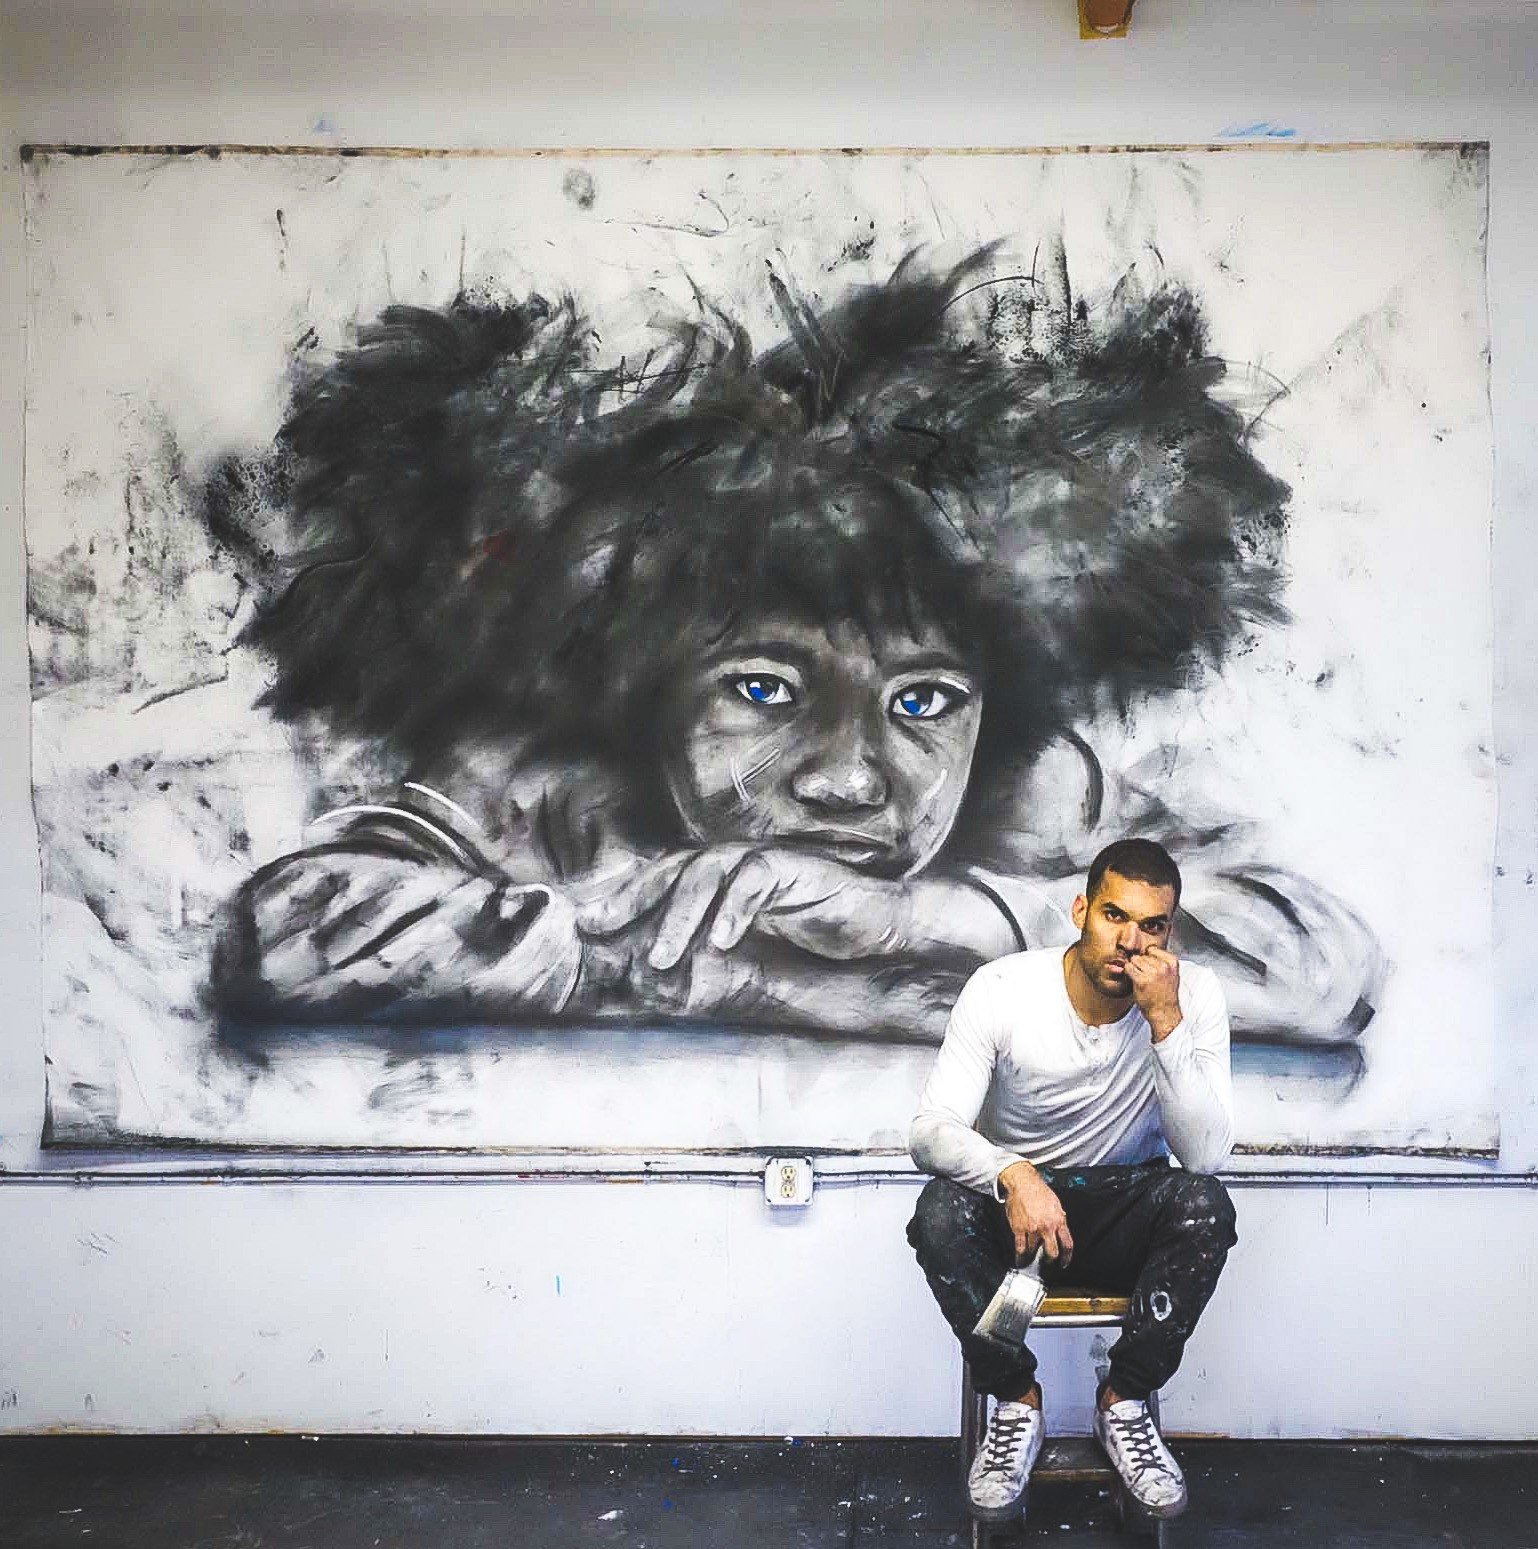 Micah Johnson art, 'Black Sheep.' 2020. 60 x 67_, Charcoal and oil on canvas from Micah Johnson's Black Sheep exhibition